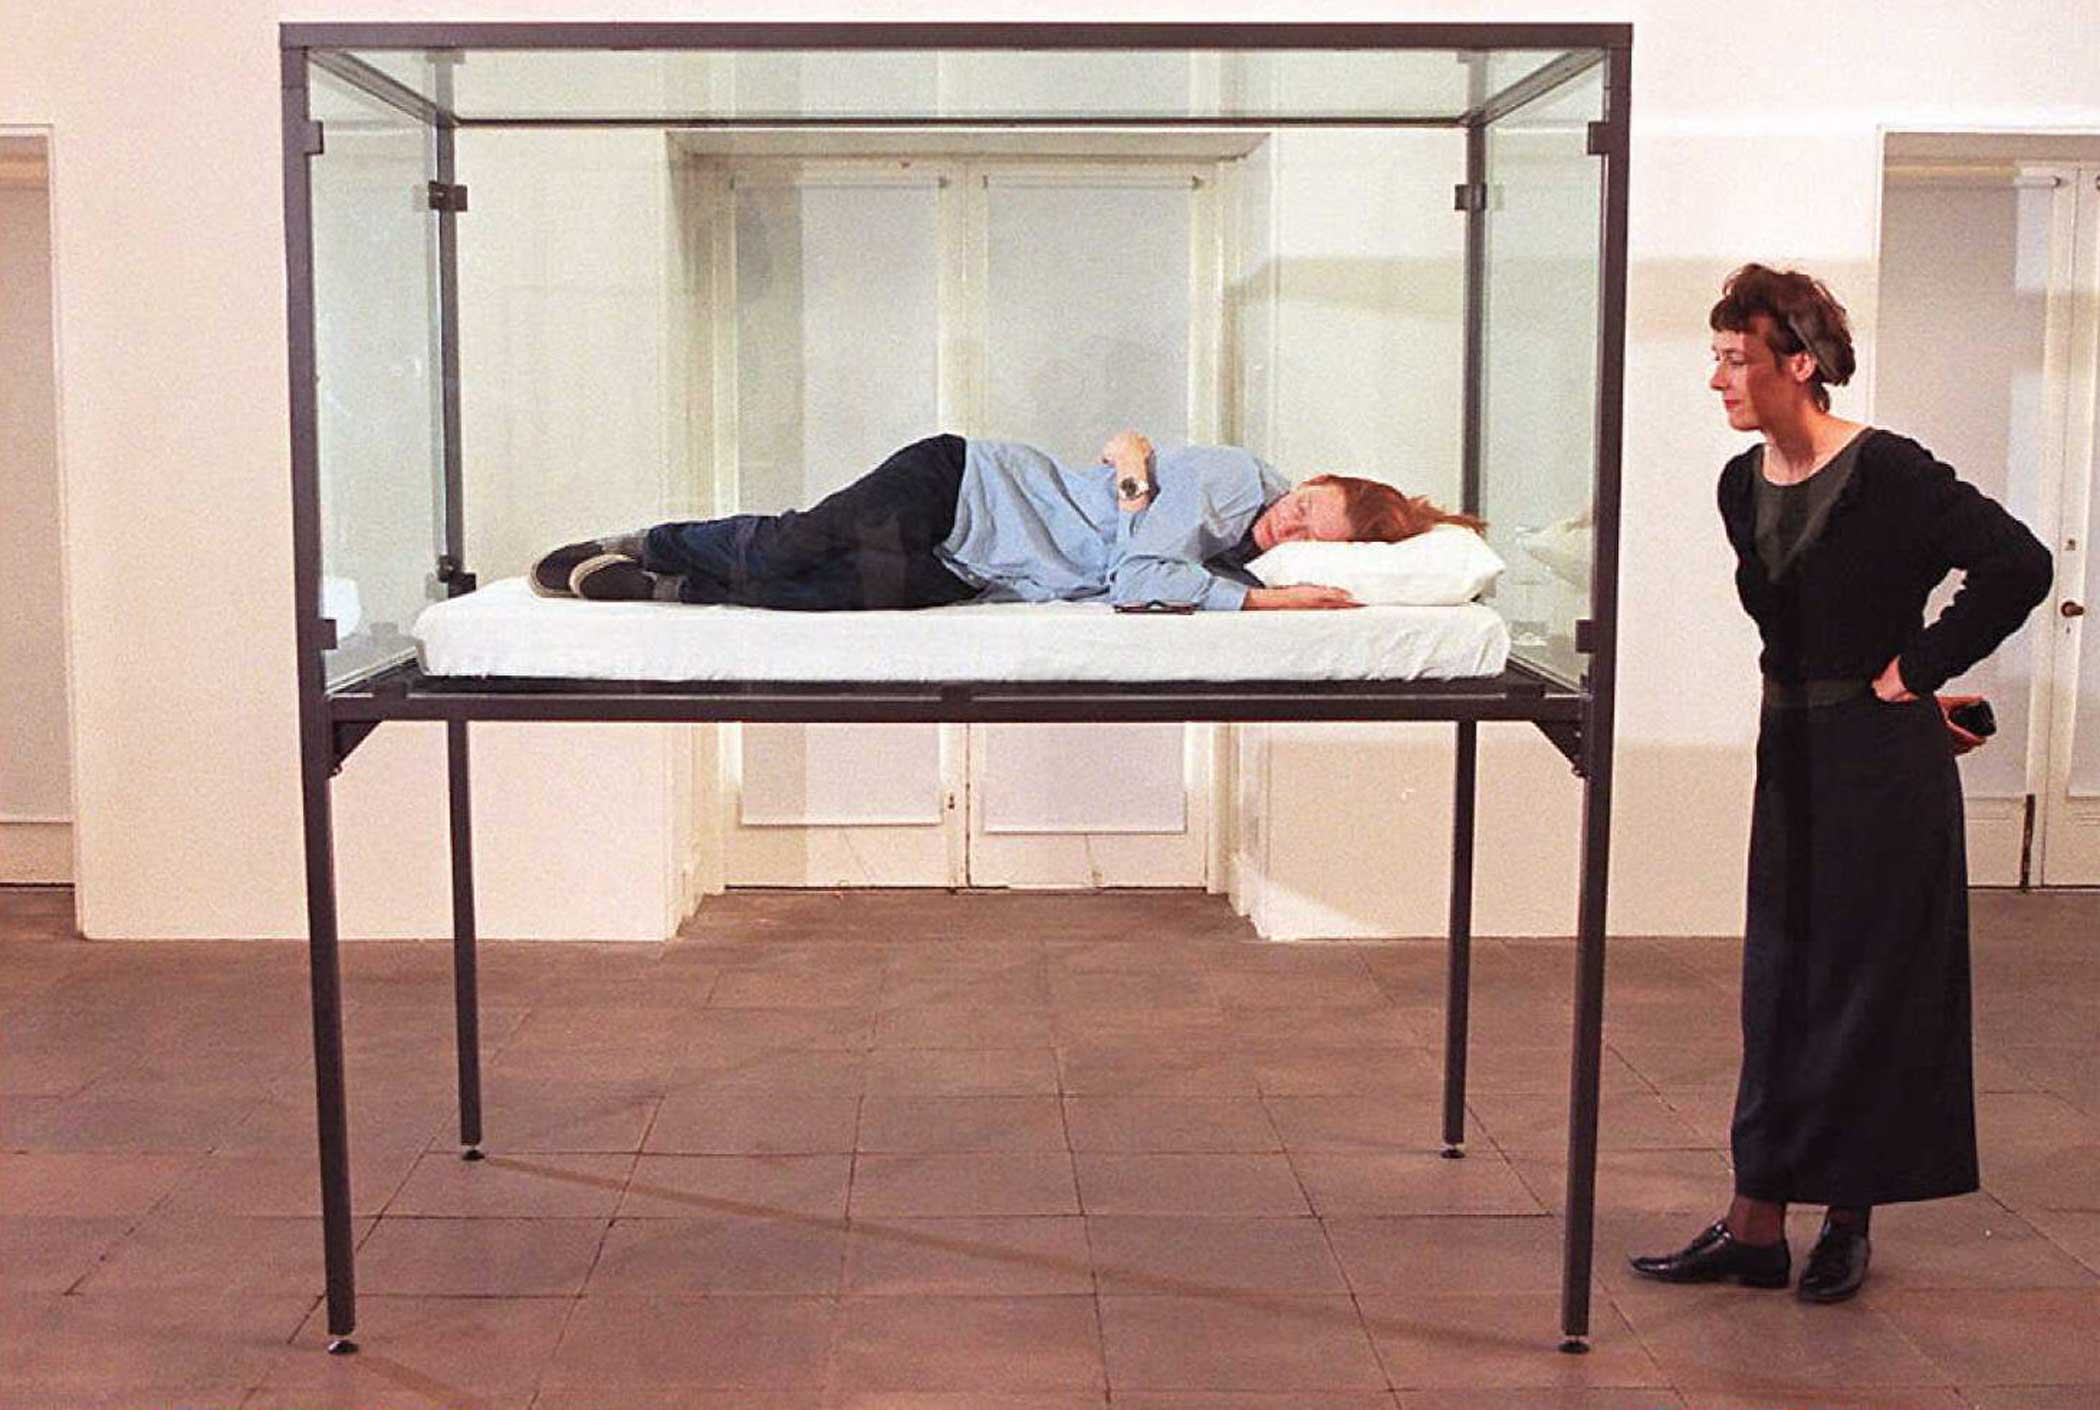 Tilda Swinton sleeps in a glass box as part of an exhibition called  The Maybe  at the Serpentine Gallery on Sept. 4, 1995 in London.